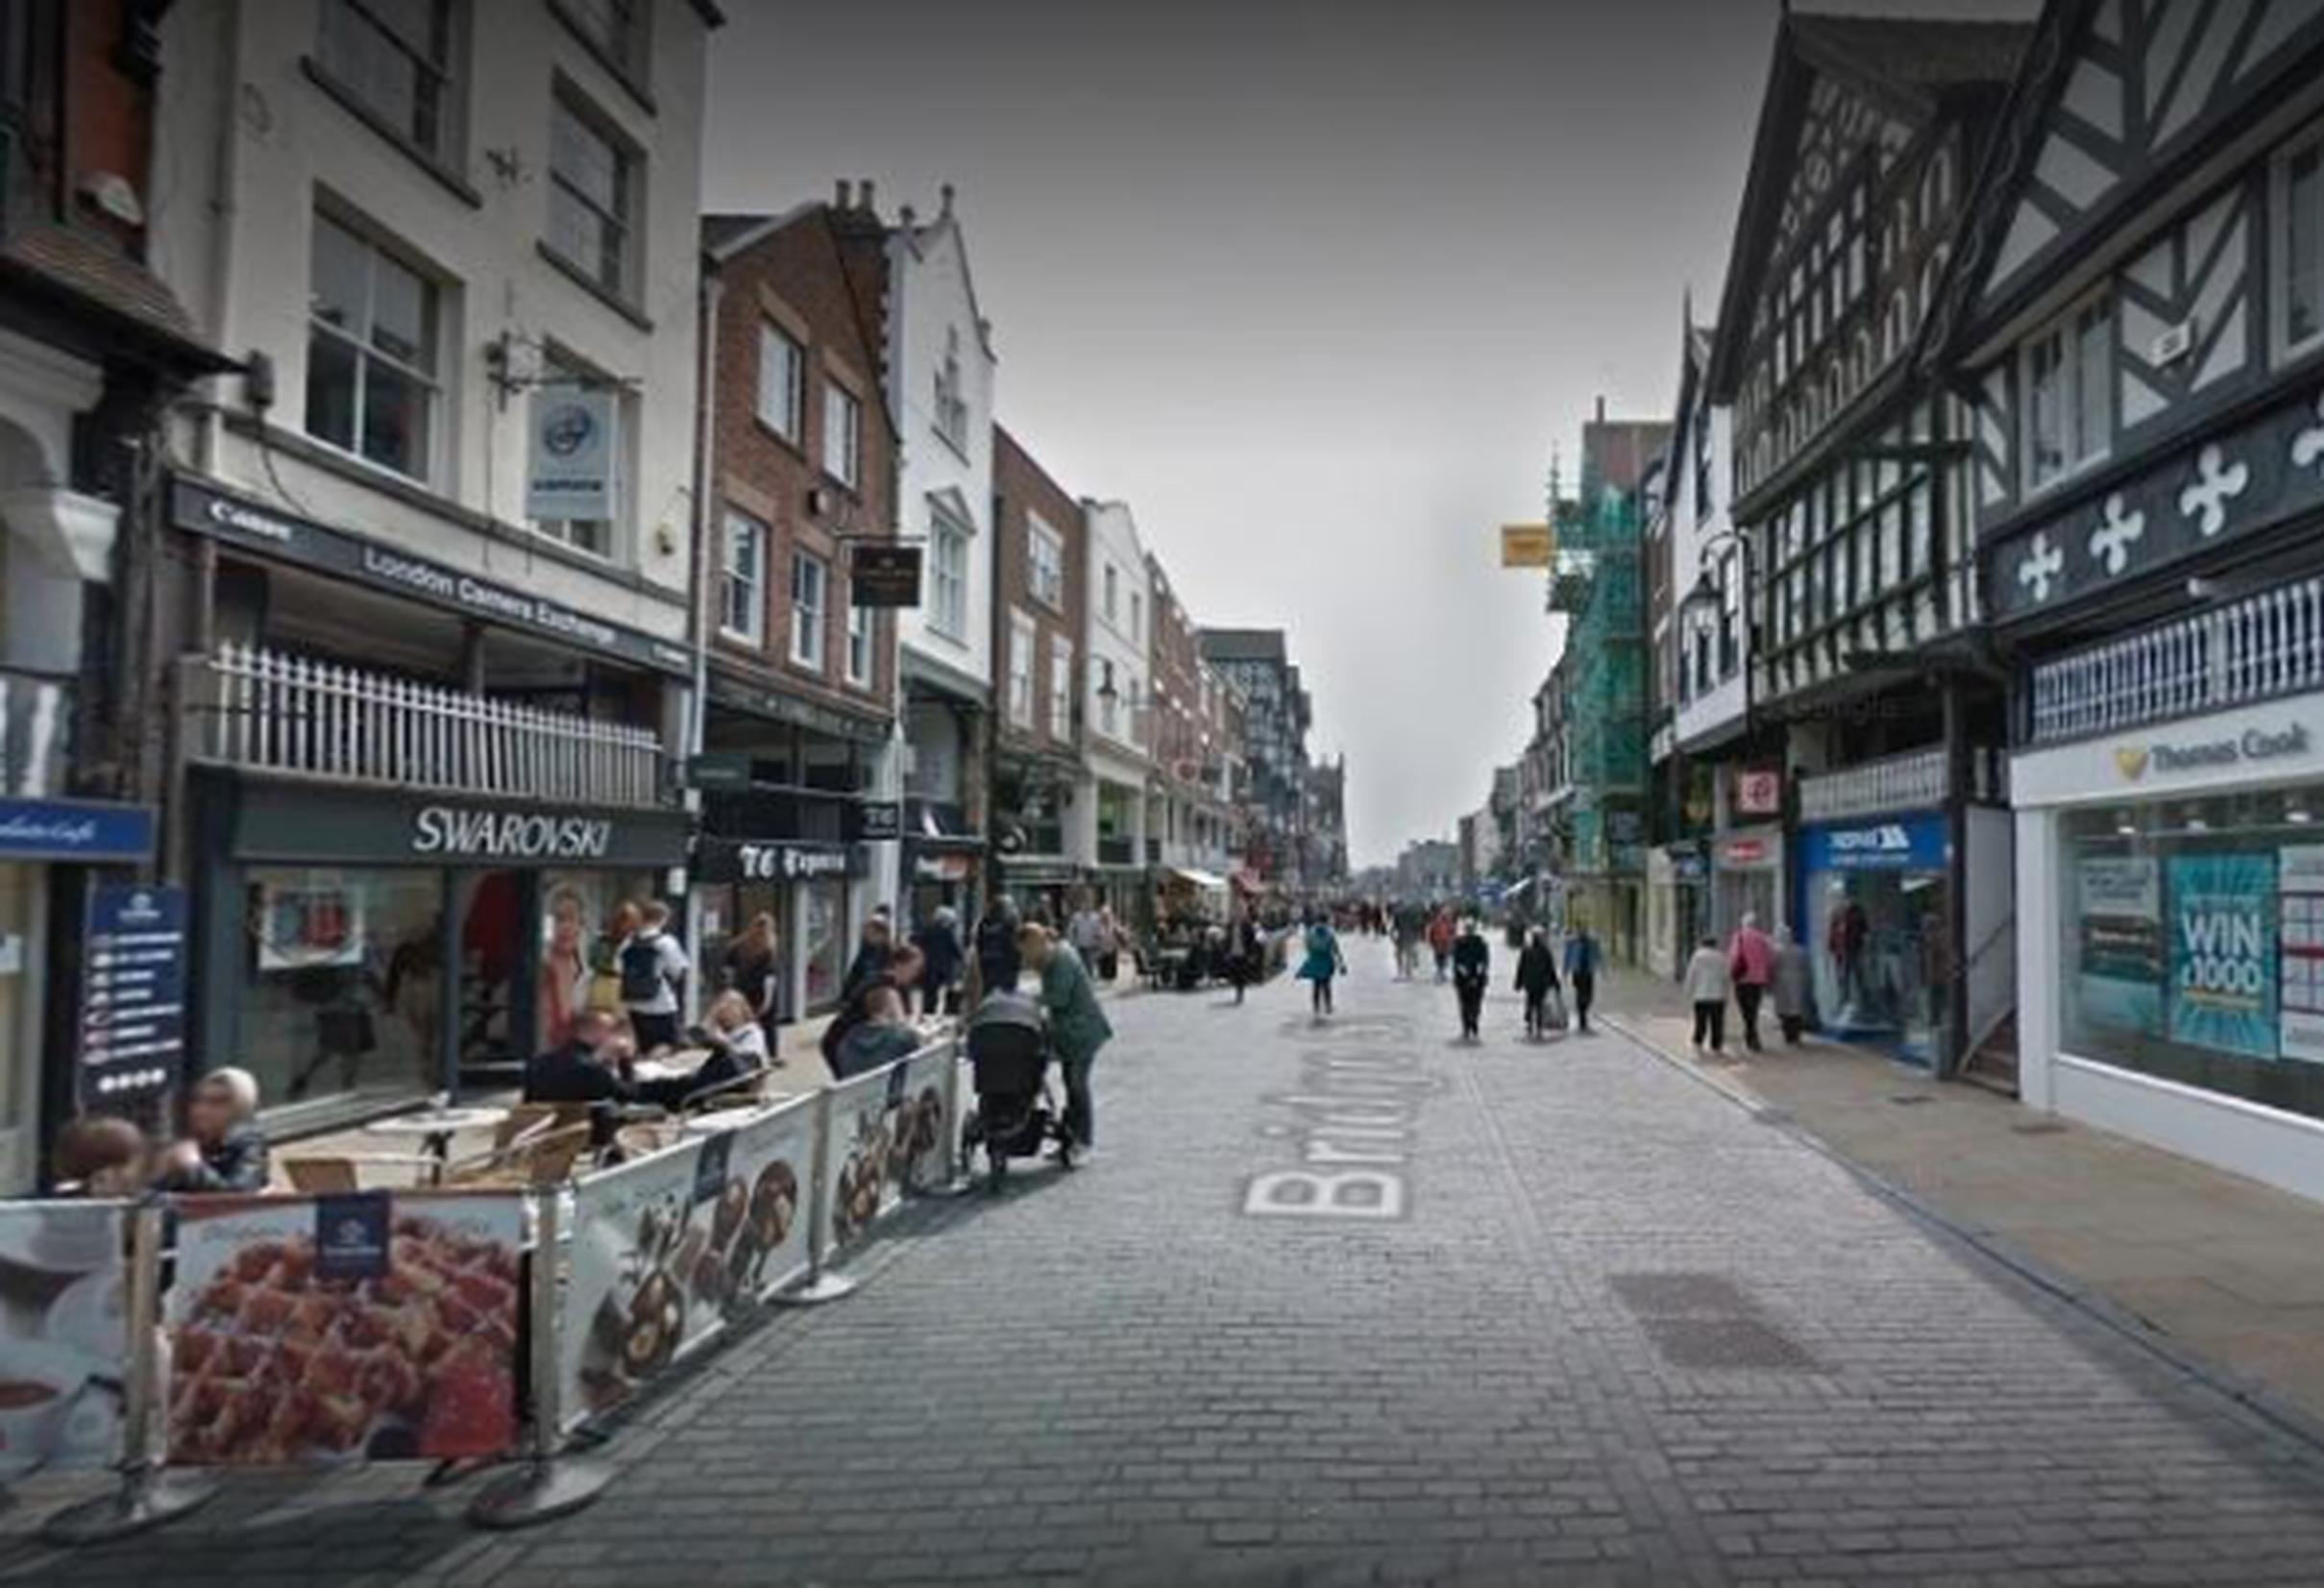 Al fresco licenses will remain free of charge for restaurants, cafes and bars in Chester city centre for the next 12 months